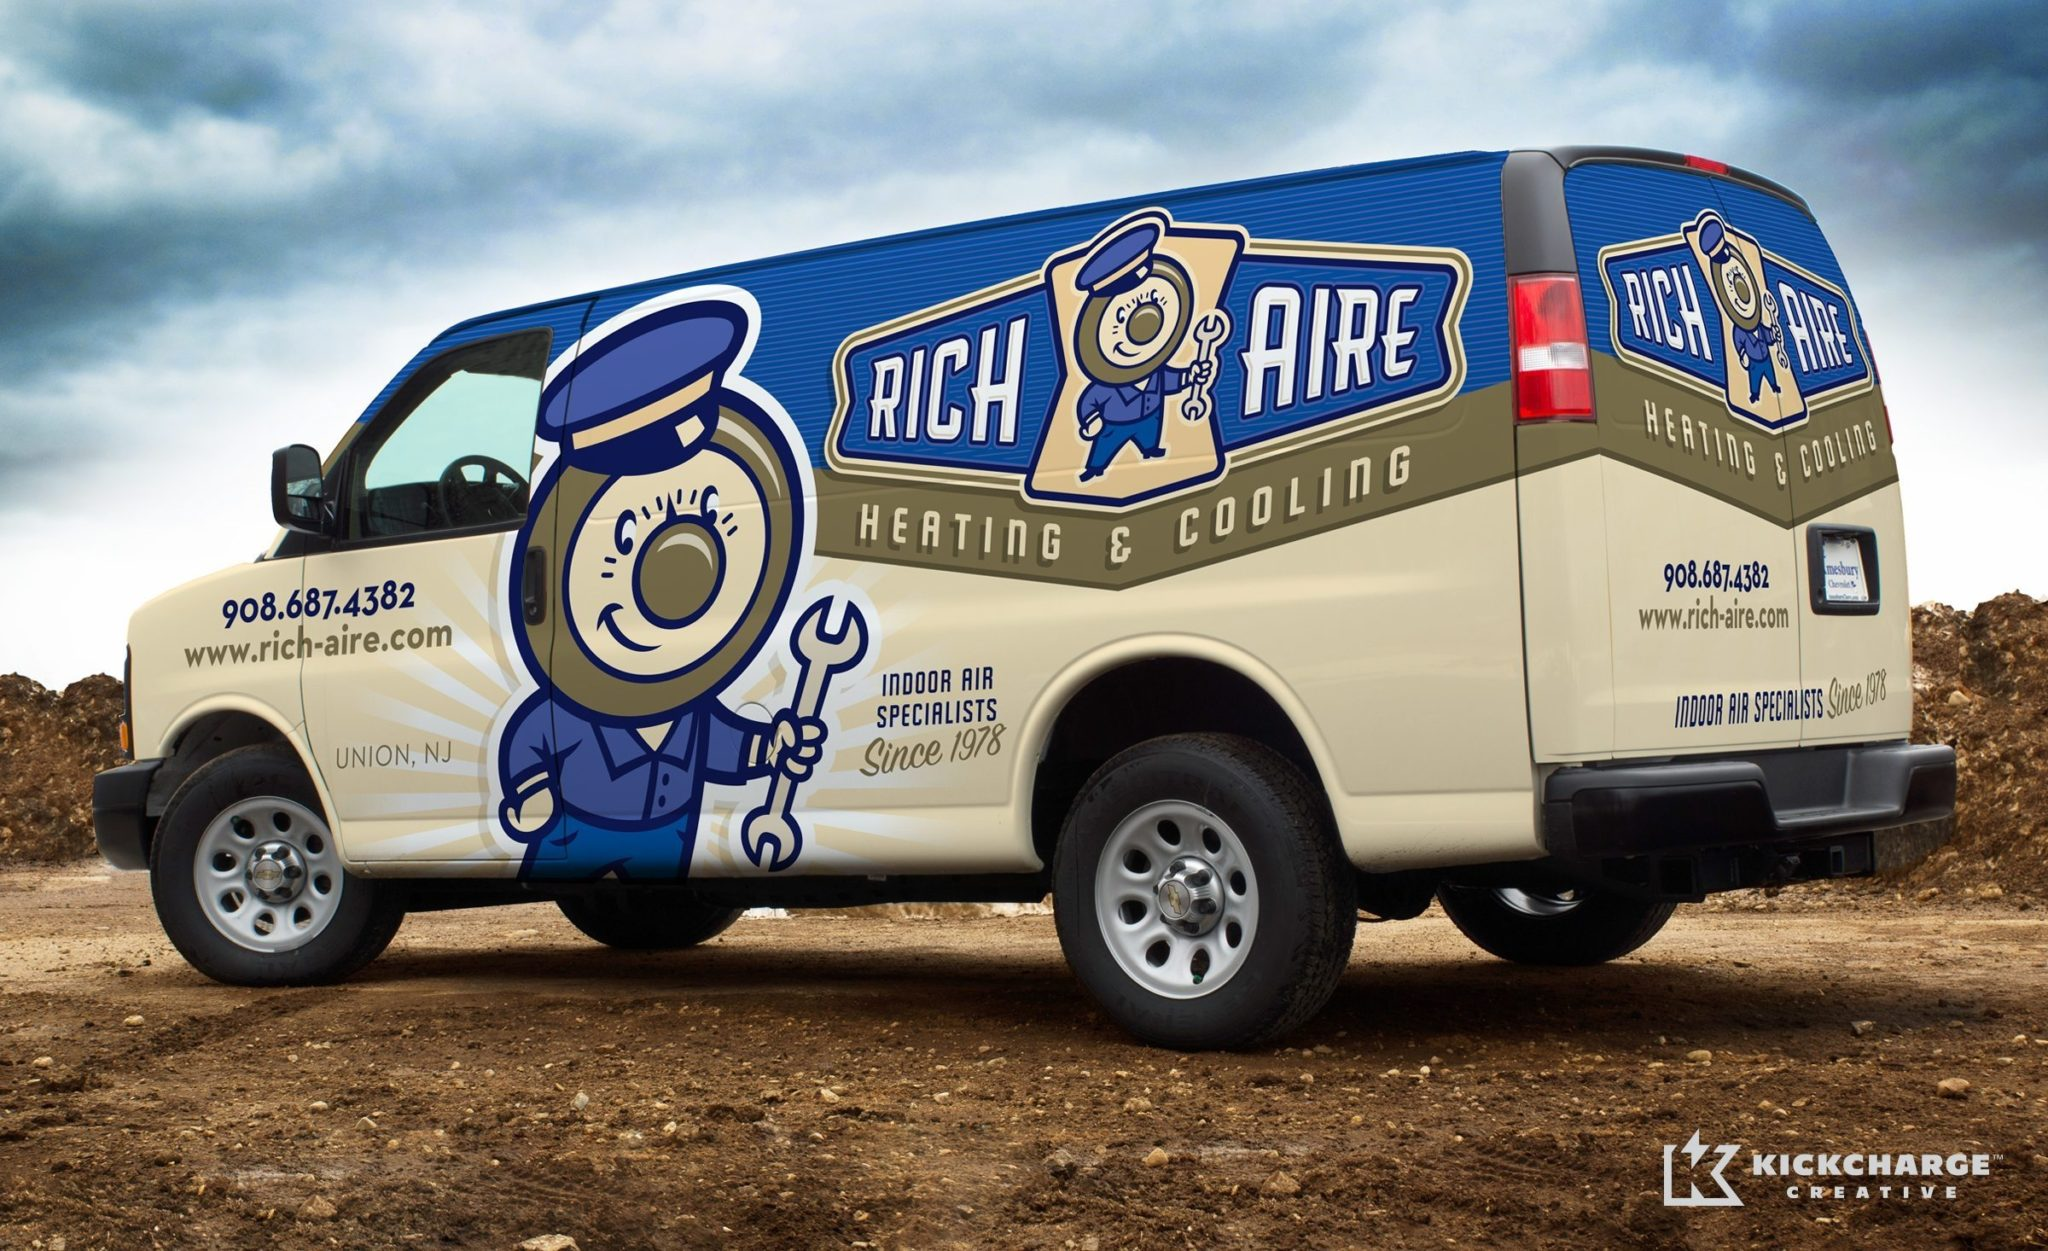 Logo design, and fleet branding for this Union, NJ HVAC company.